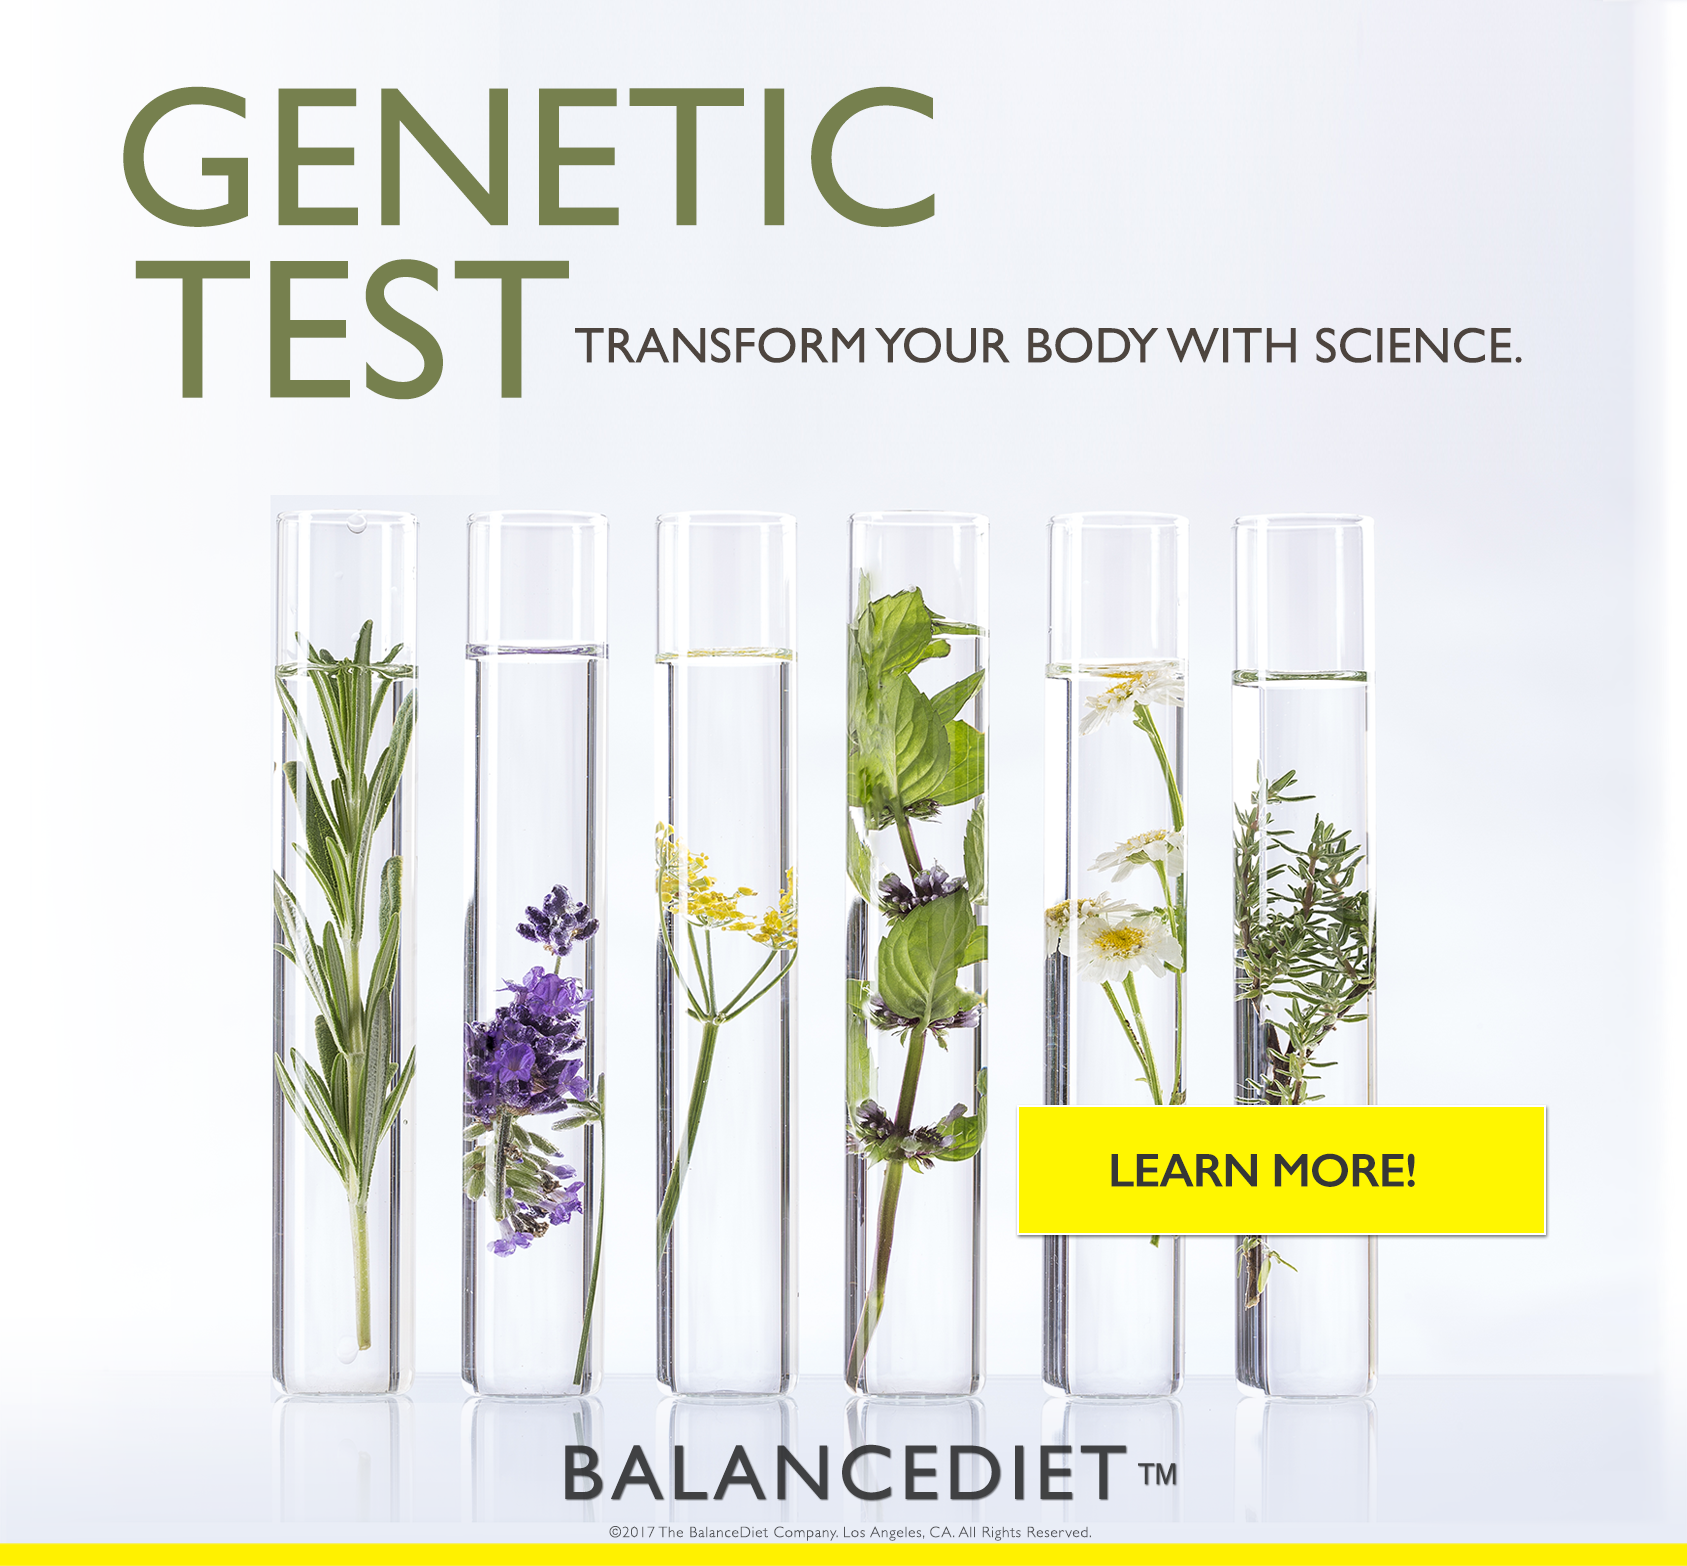 GENETIC TEST SQAURE_WITH BUTTON.png